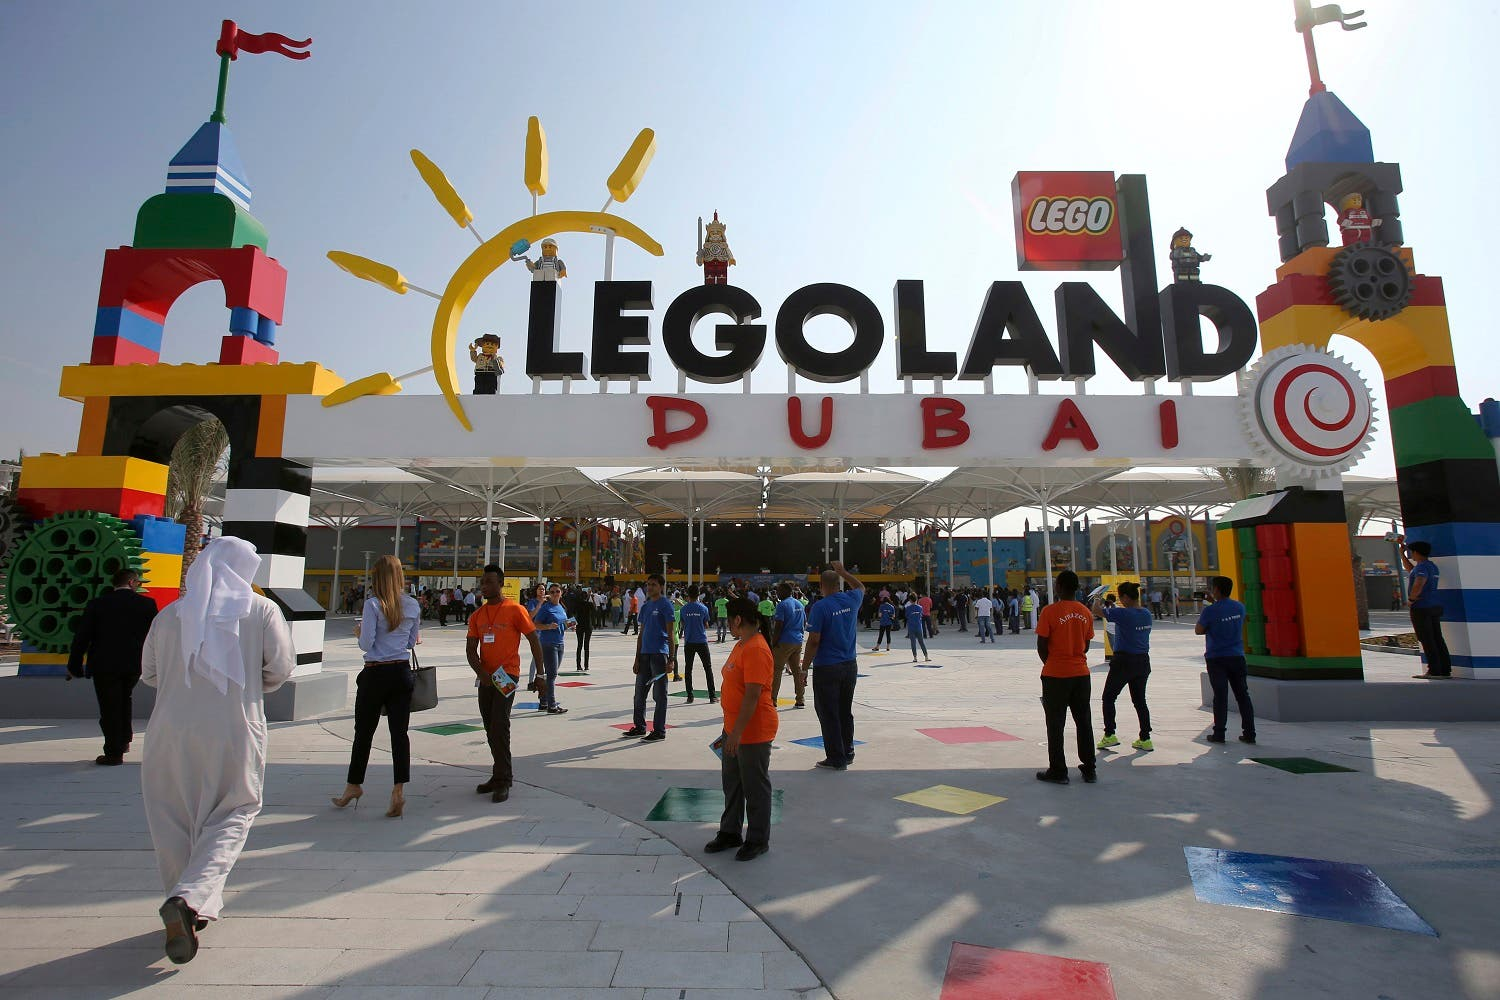 People arrive for the opening of Legoland Dubai, part of the larger Dubai Parks & Resorts project, in Dubai, United Arab Emirates, Monday, Oct. 27, 2016 (Photo: AP/Kamran Jebreili)